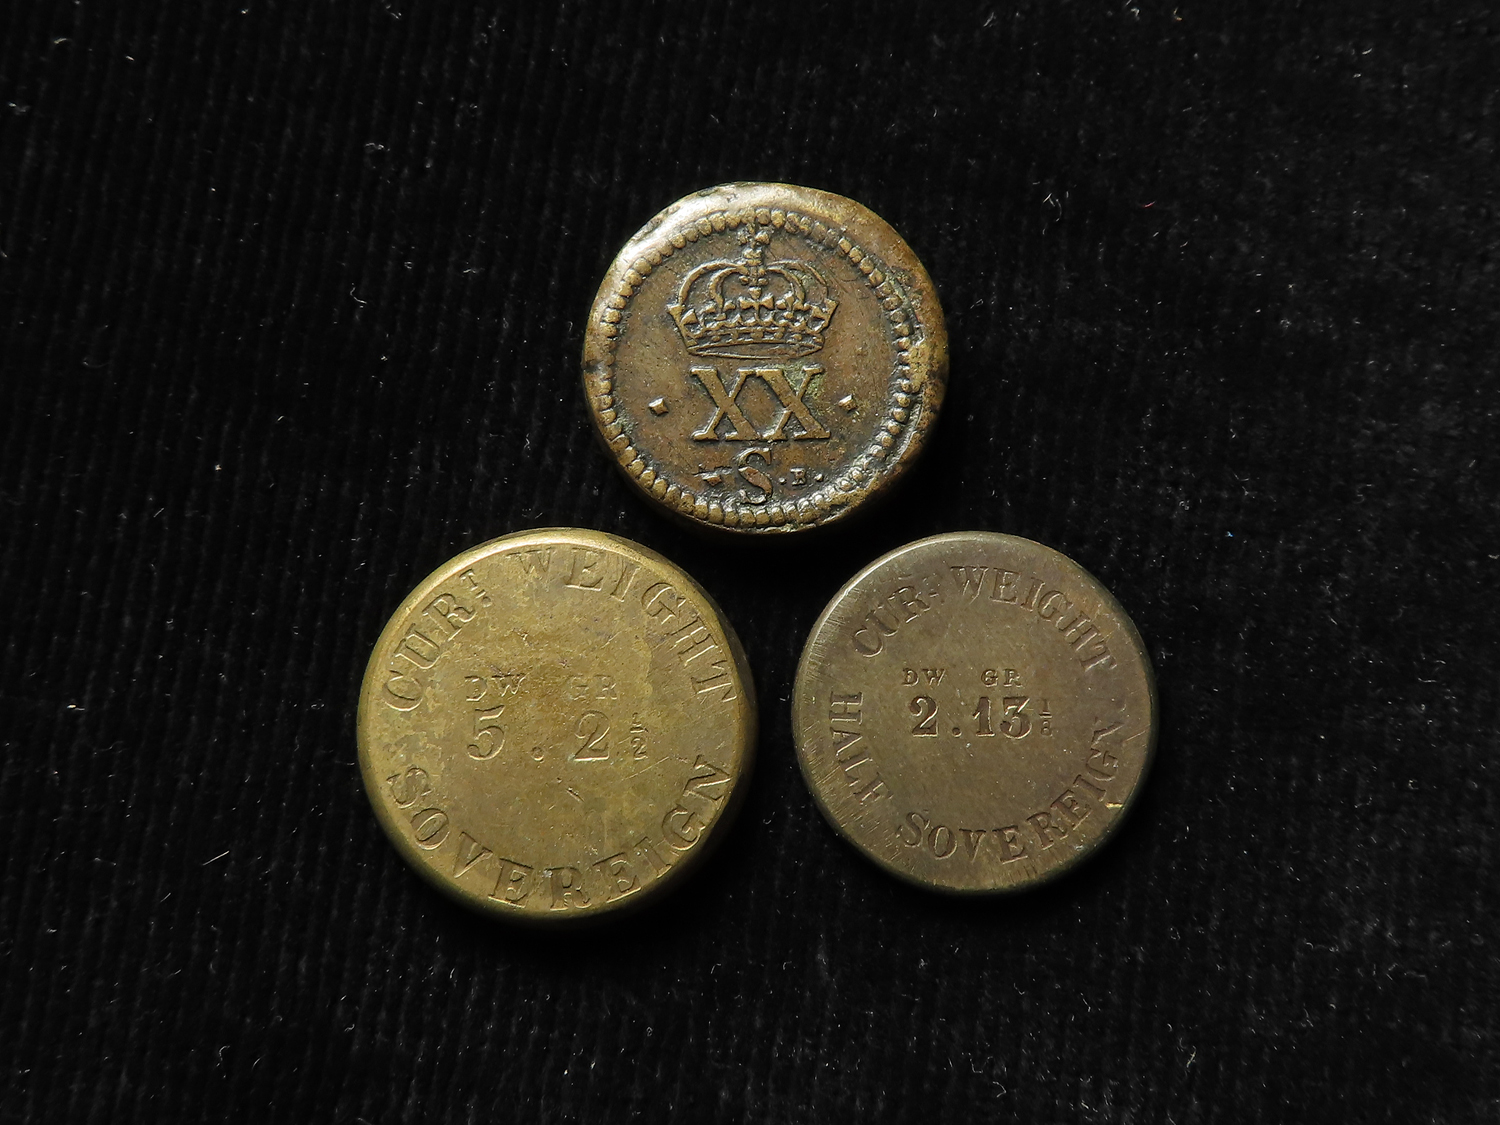 Coin Weights (3) - an excellent Charles I portrait weight for XXs, GVF, and two Queen Victoria, - Image 2 of 2